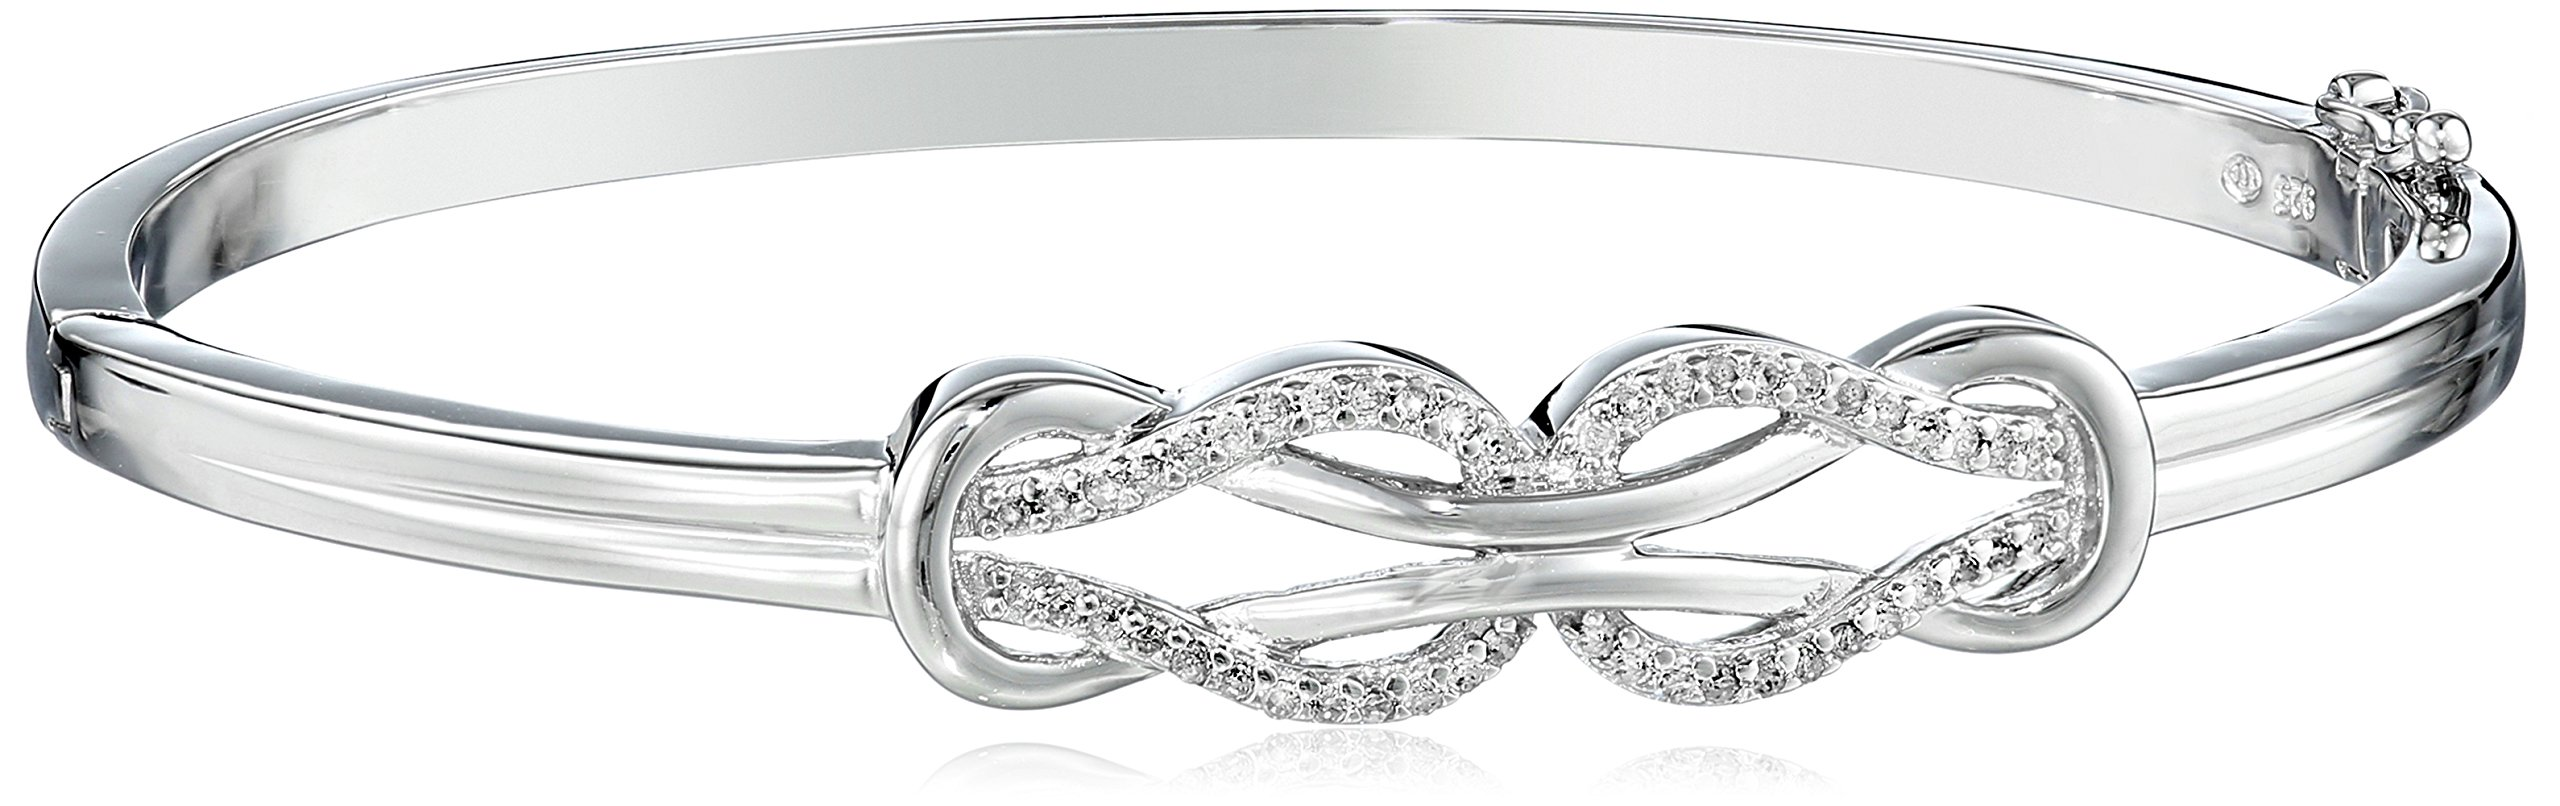 Sterling-Silver-Diamond-Double-Knot-Bangle-Bracelet-14-cttw-J-Color-I3-Clarity